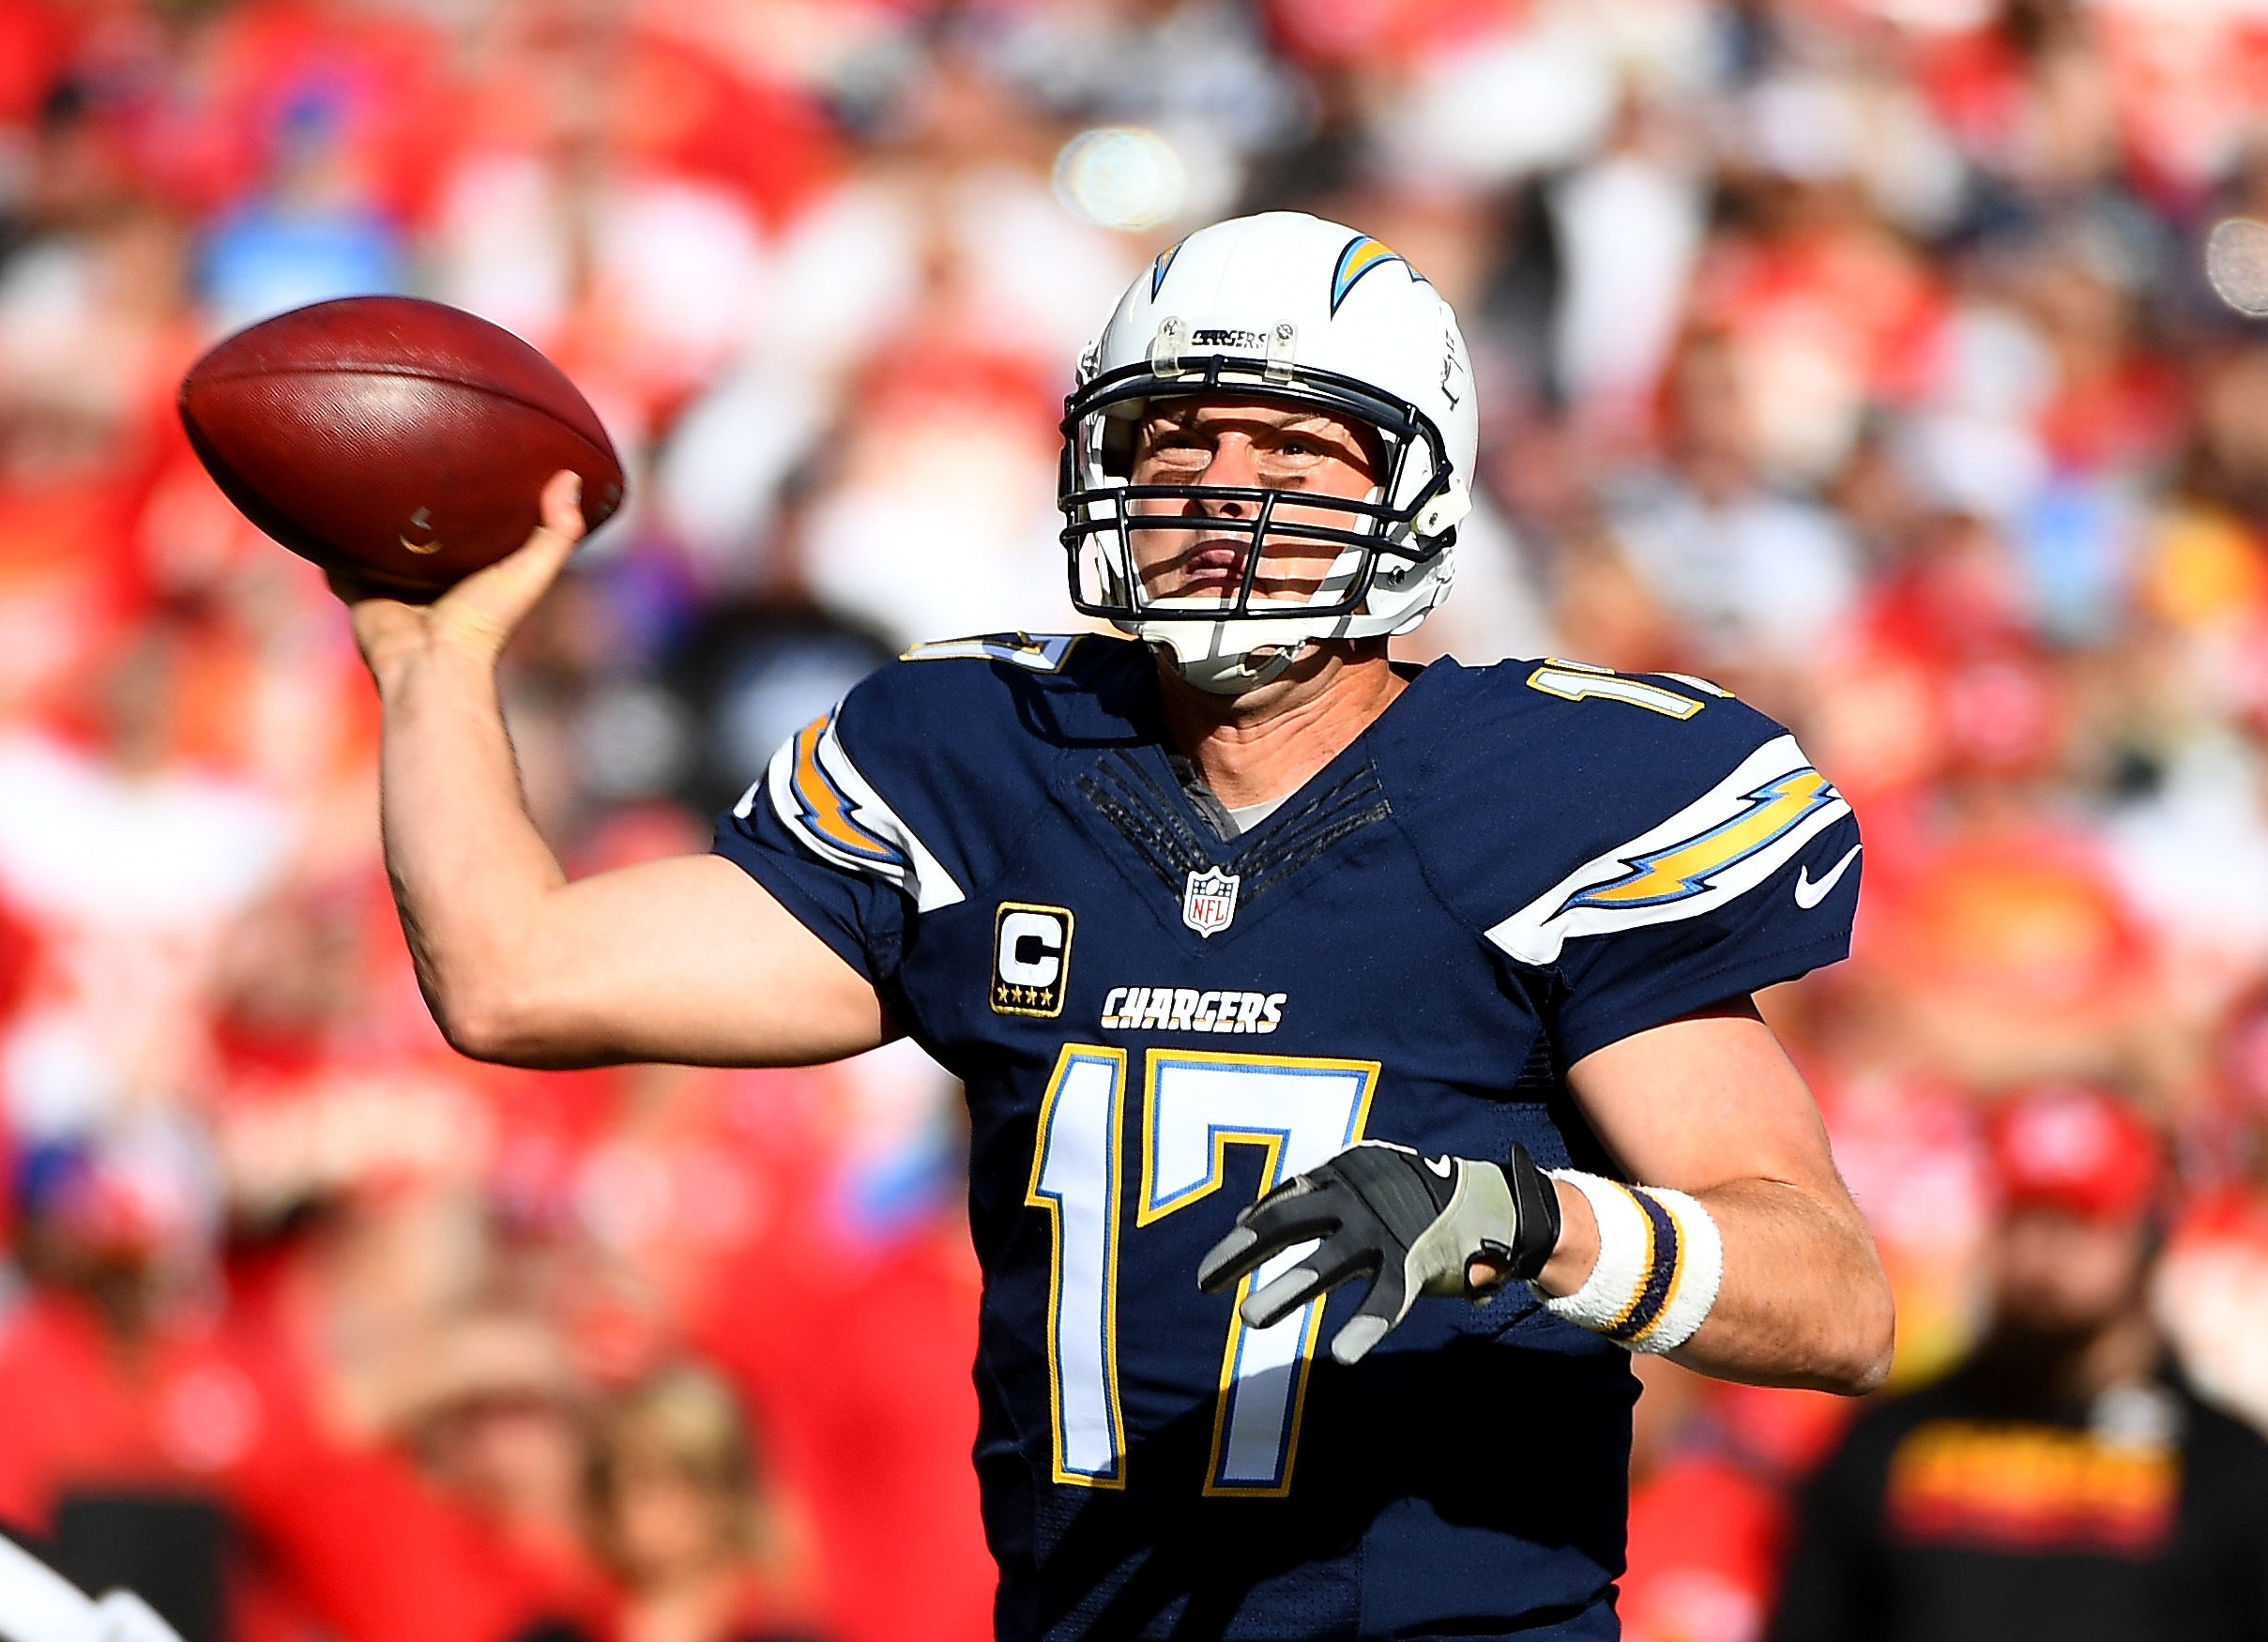 2017 Fantasy Football Preview: Upside and value players from the West coast